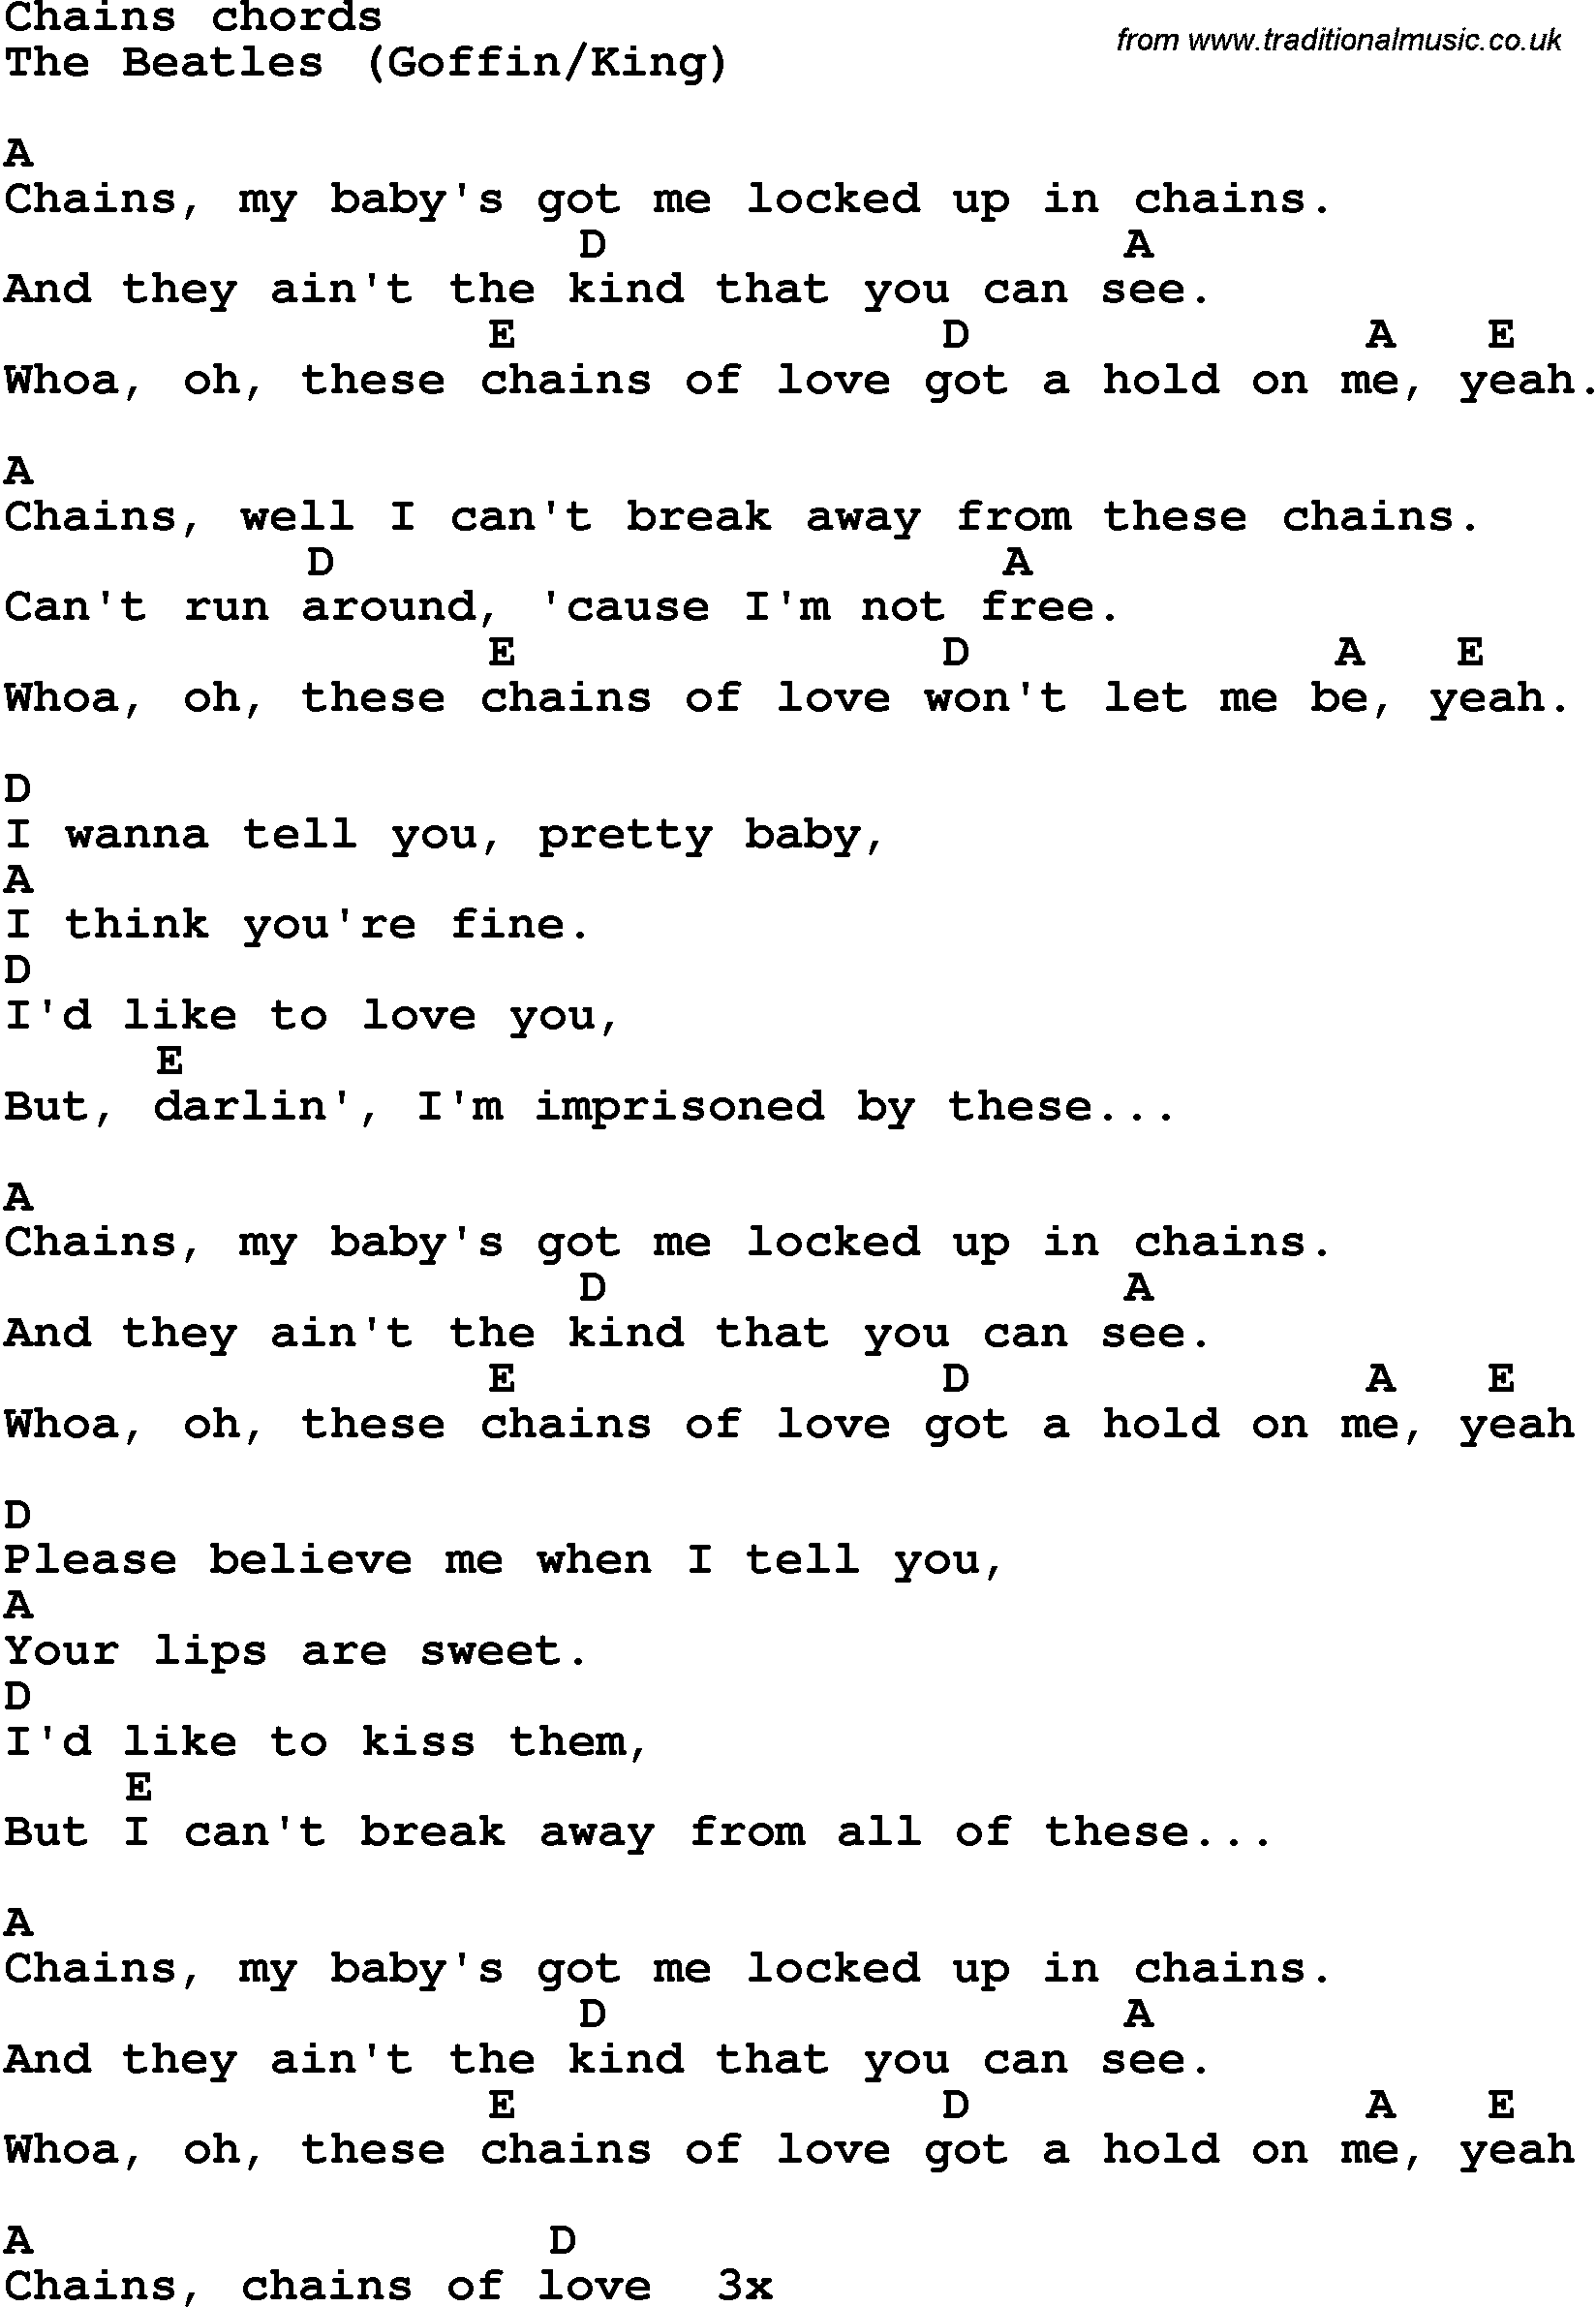 Song lyrics with guitar chords for chains the beatles song lyrics with guitar chords for chains the beatles hexwebz Images